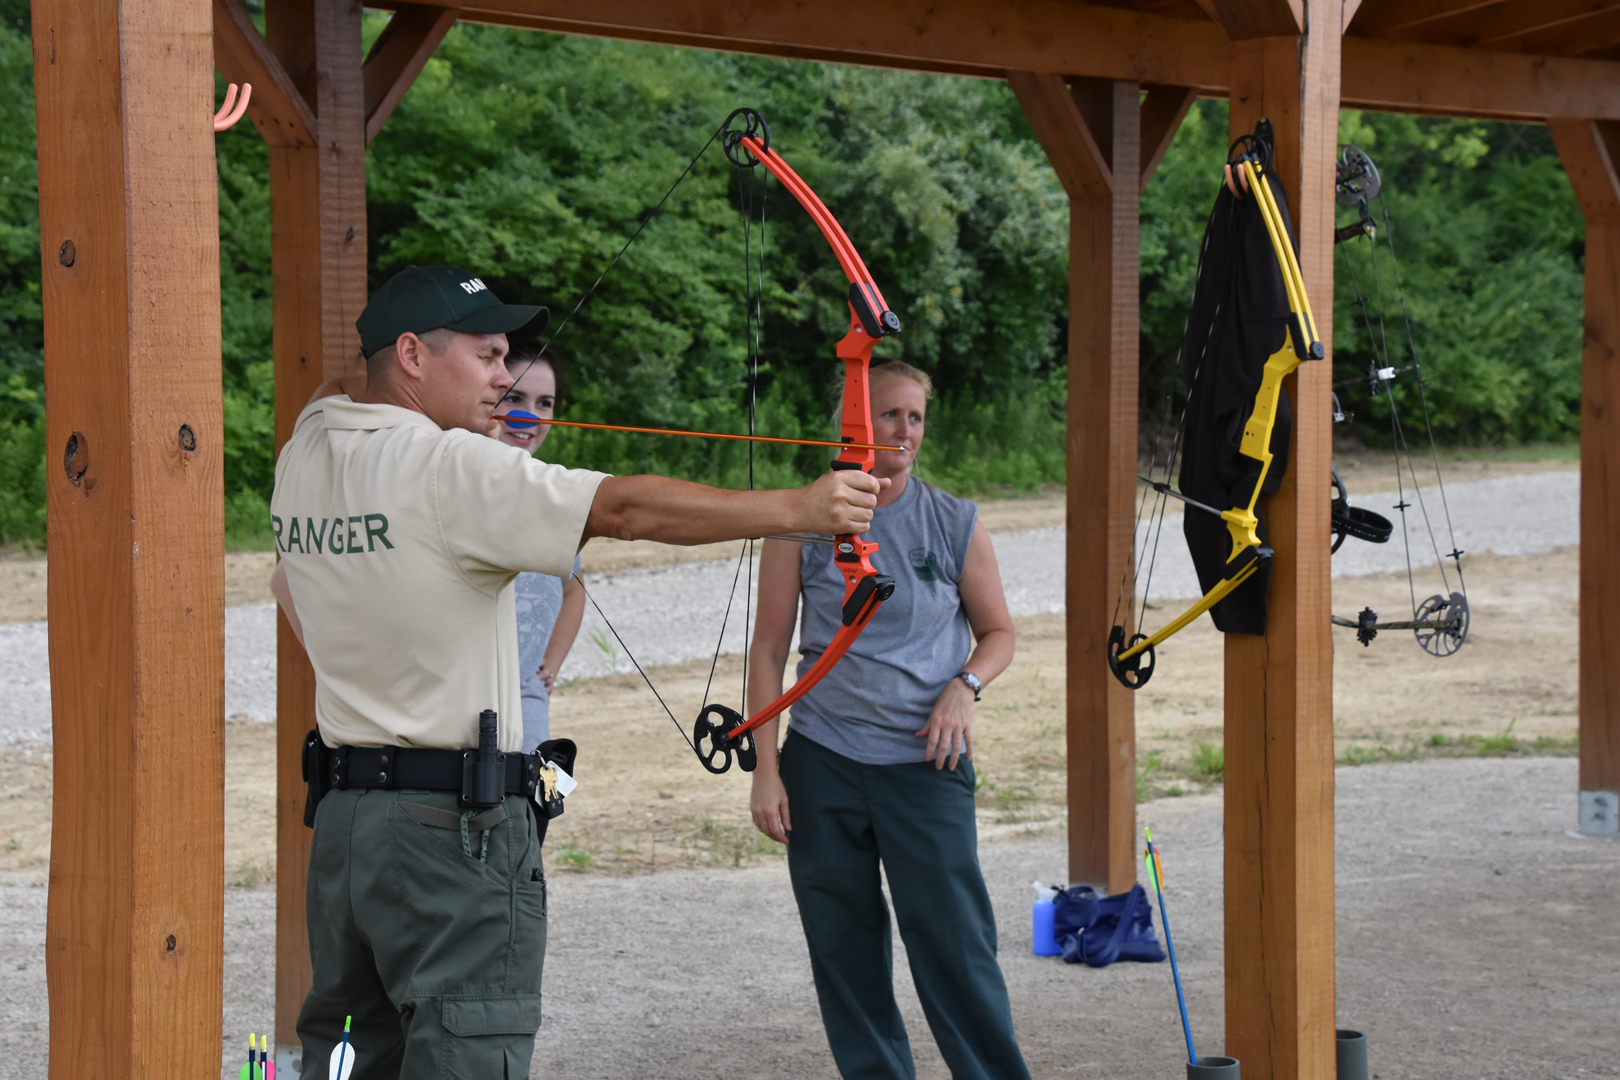 Scioto Grove Manager Geoff Hamilton shoots a compound bow at the static archery course.